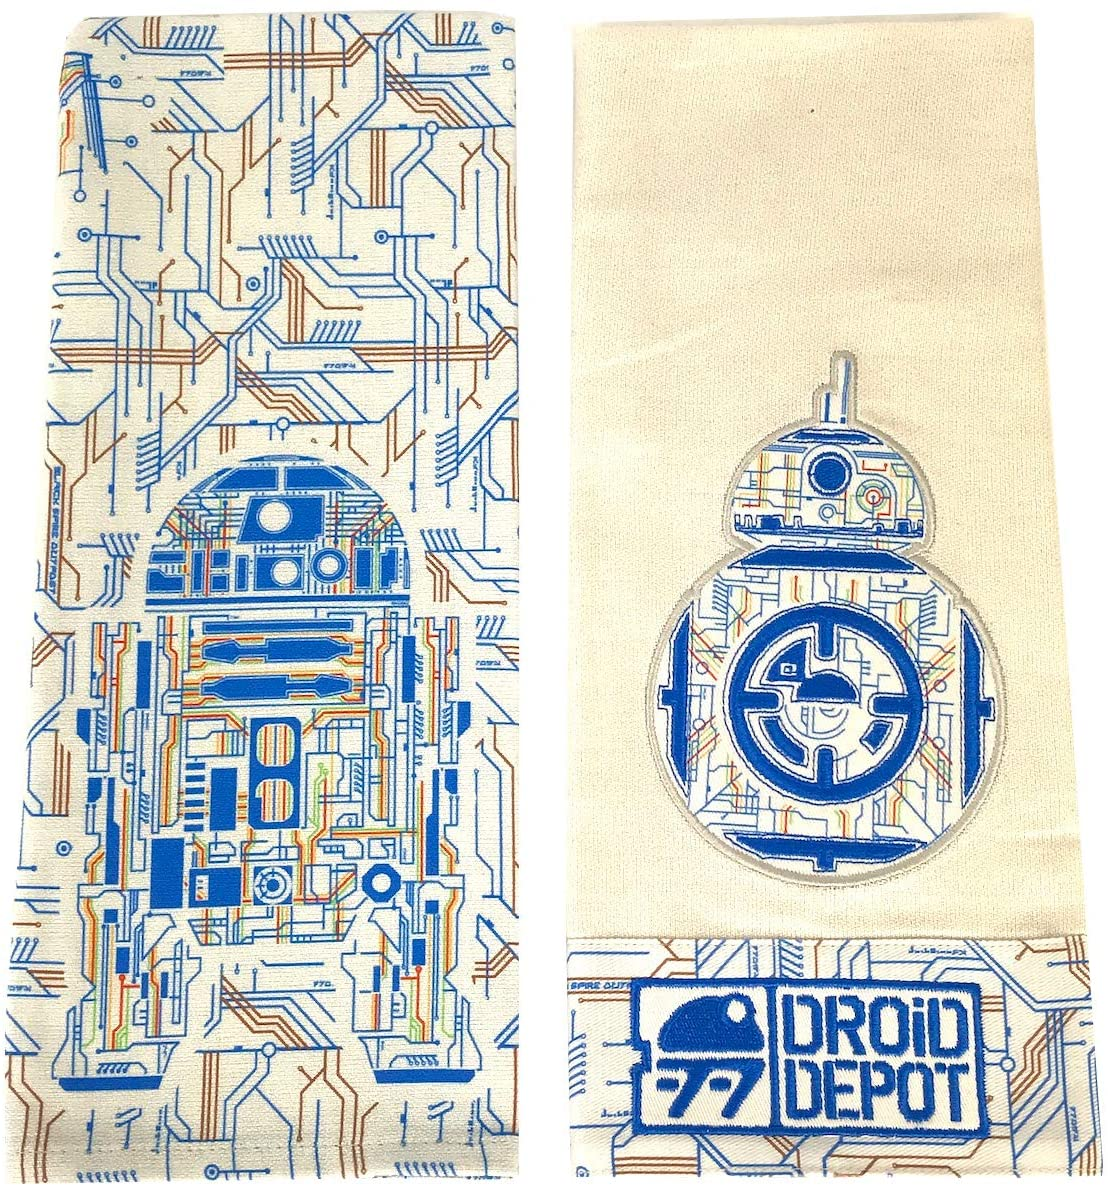 SWGE Droid Depot Dish Kitchen Towel Set 1